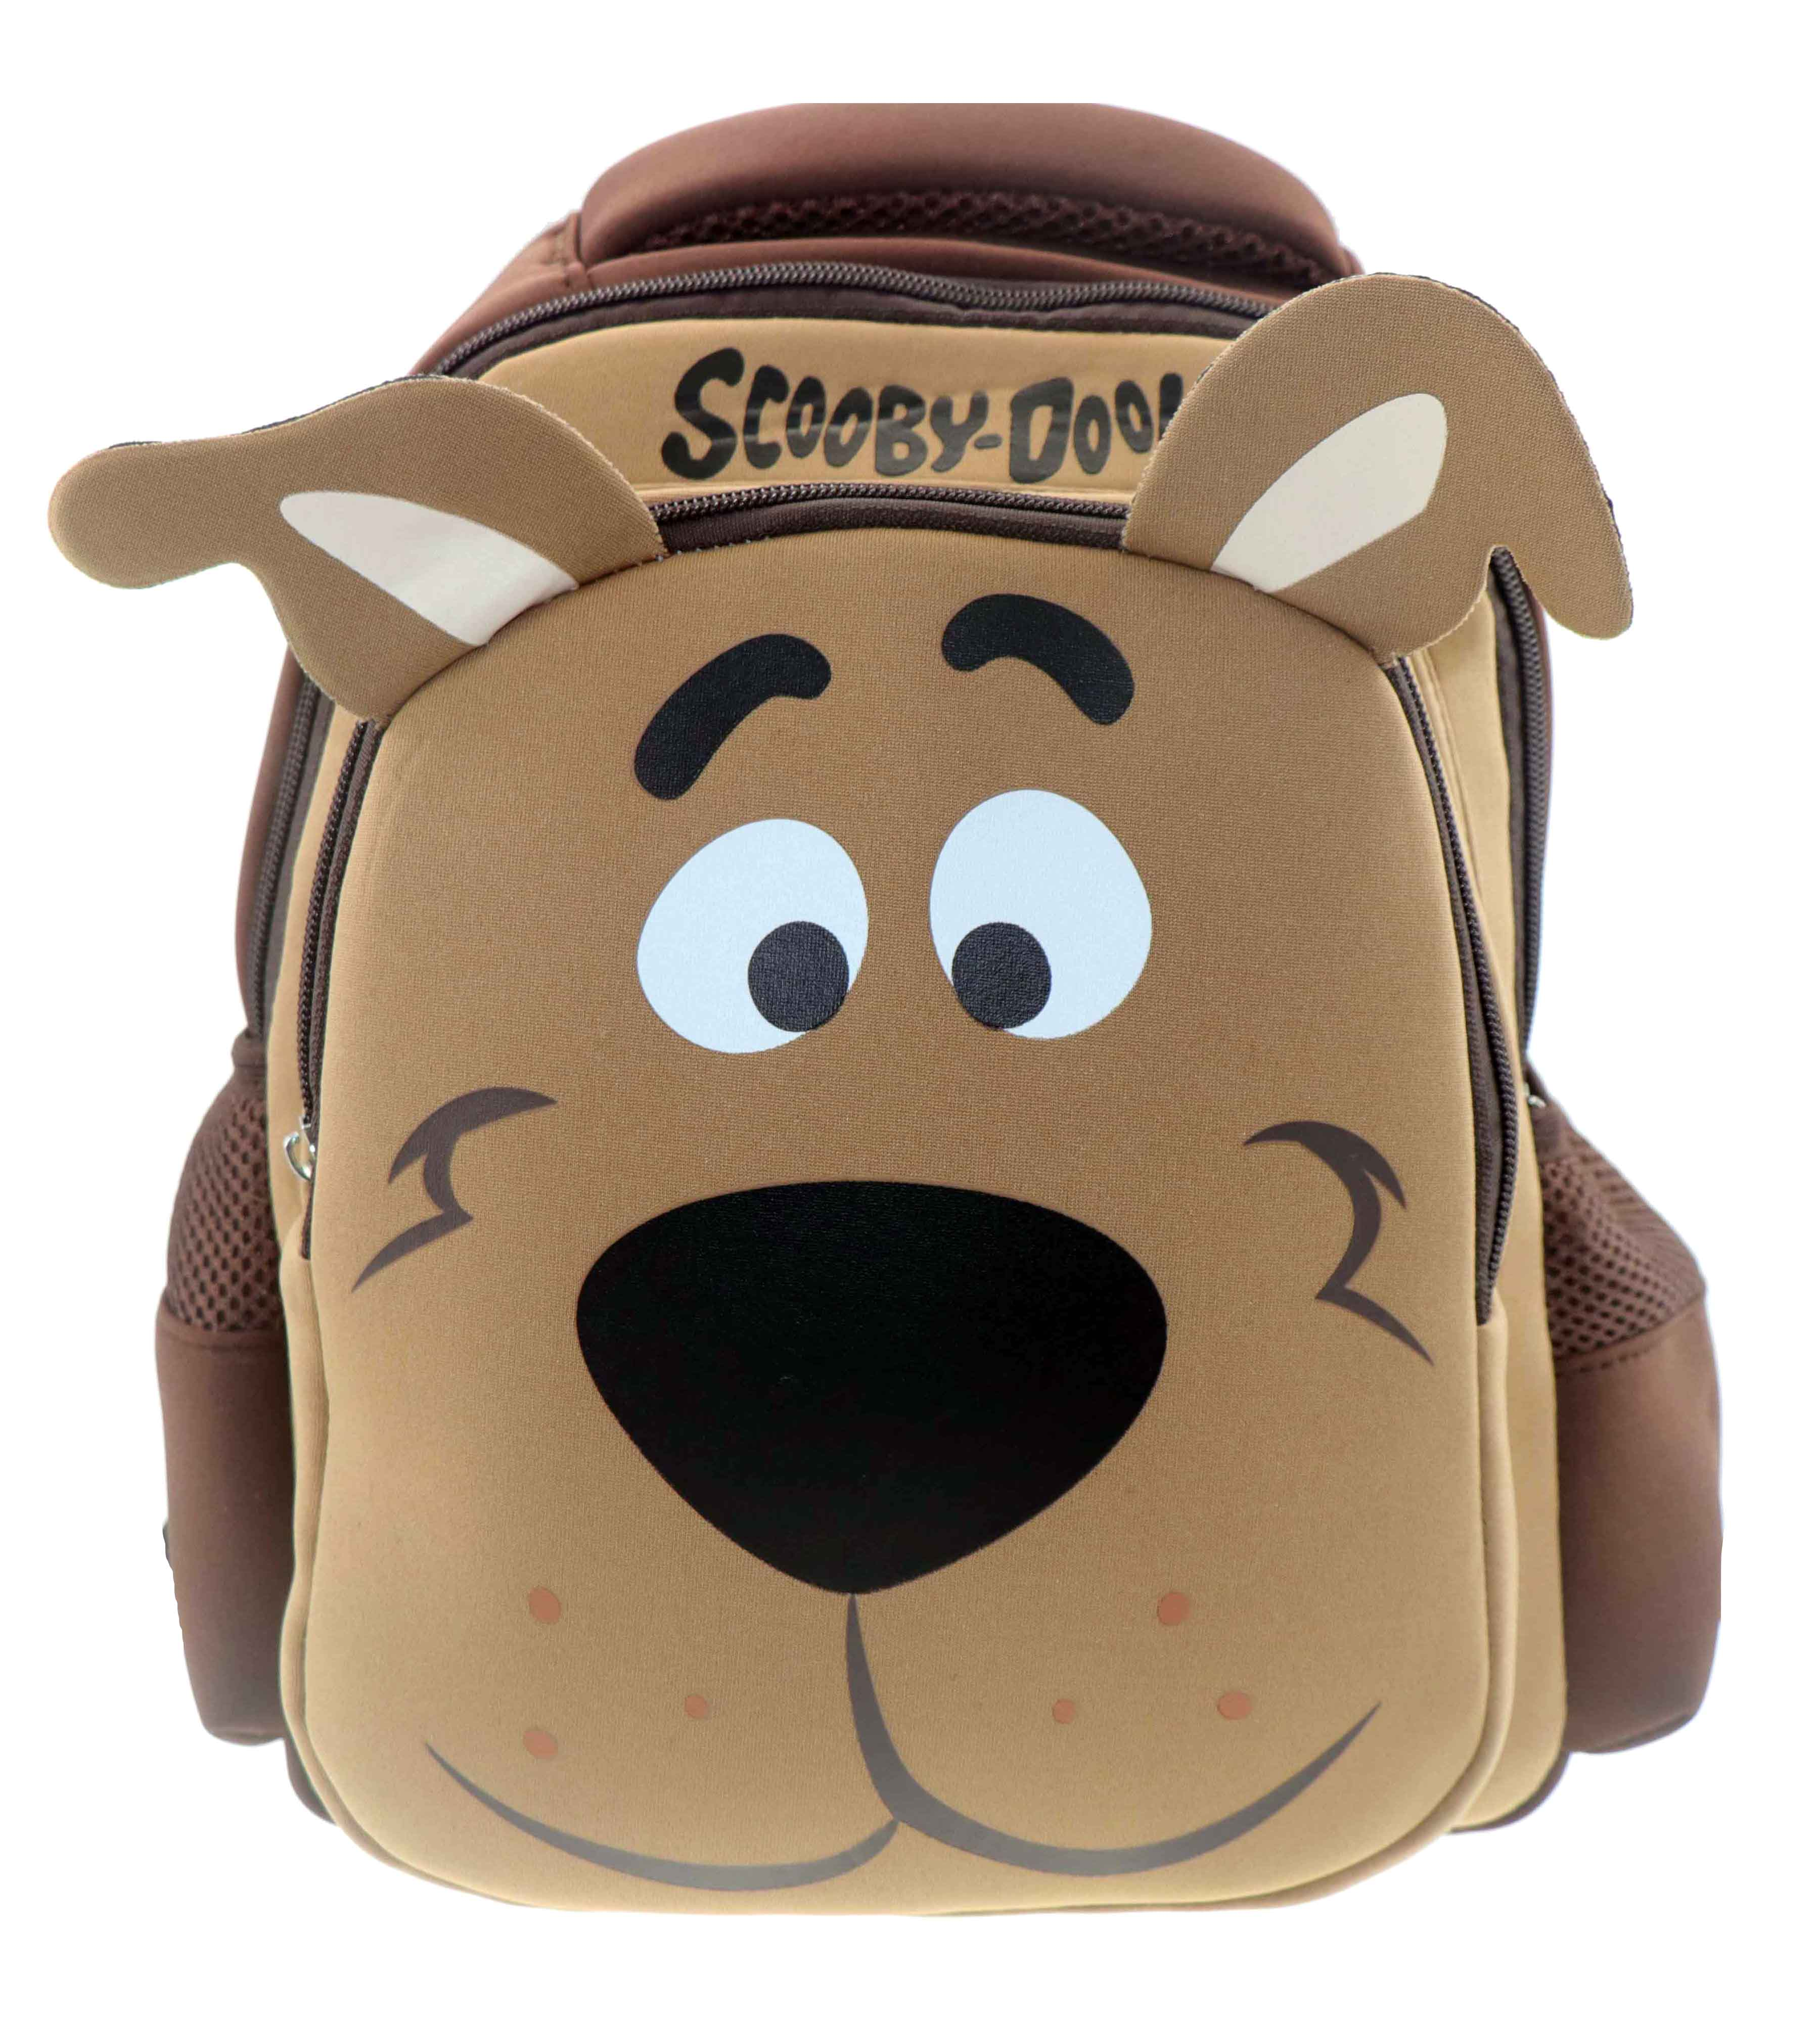 Scooby Doo Back to School Backpack